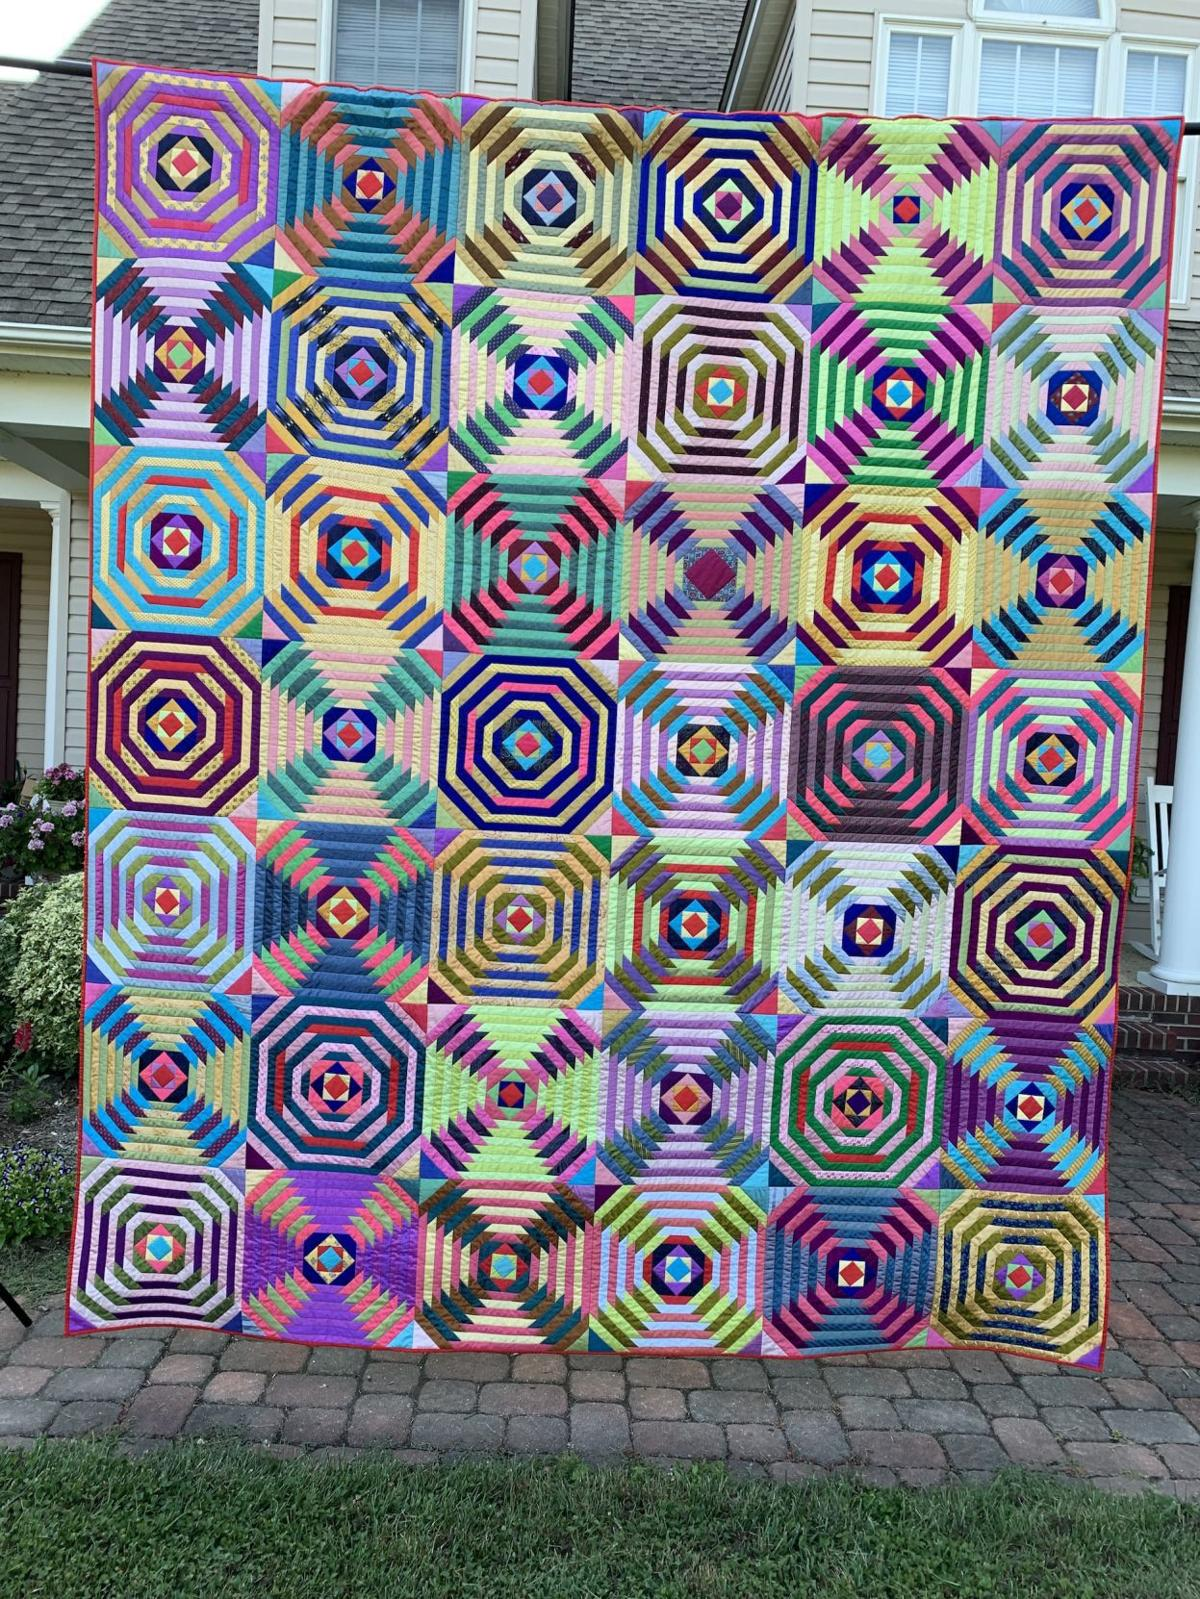 Centreville artist's quilt featured in national show